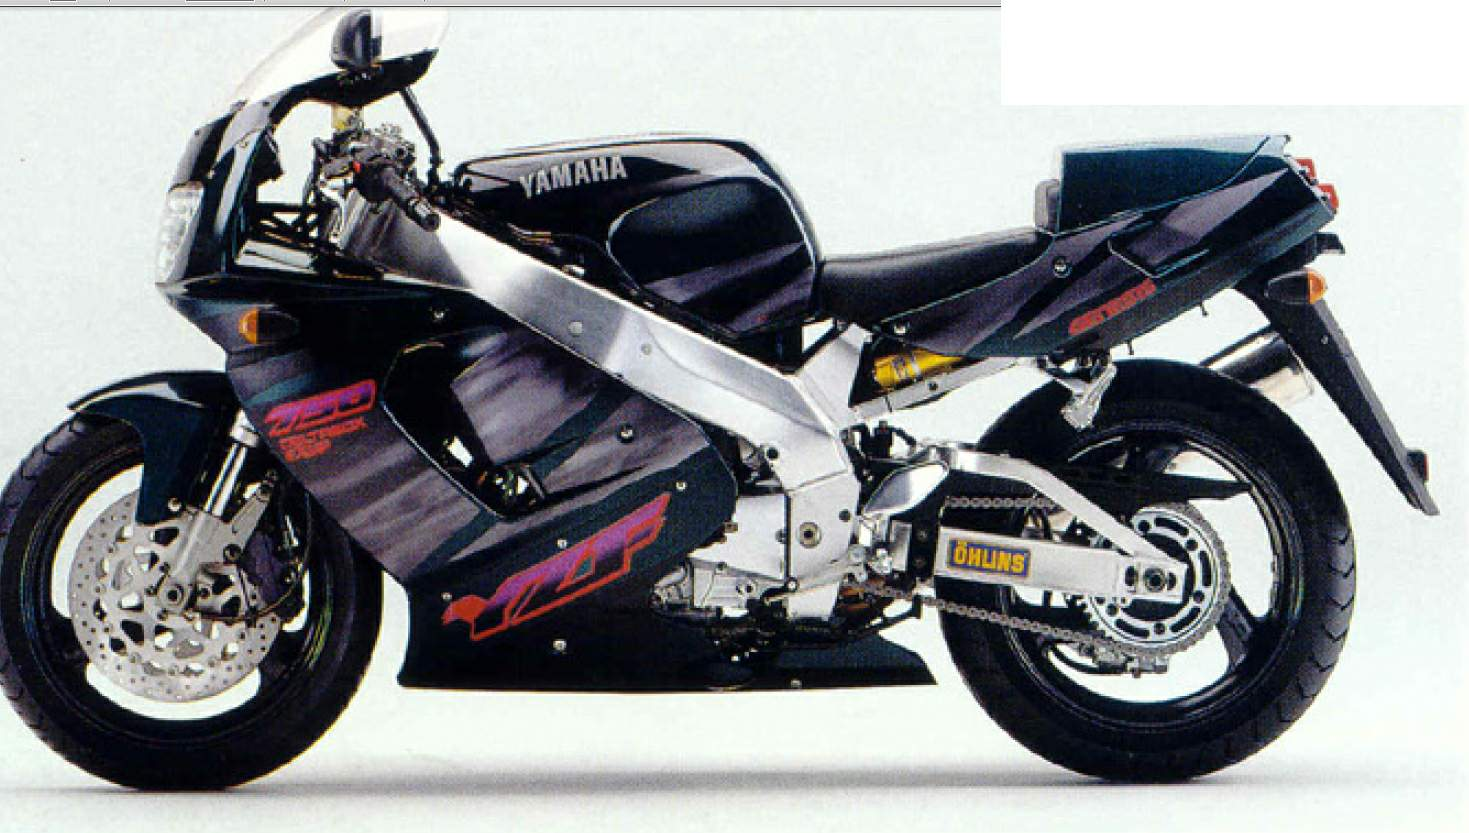 Yamaha Fzr Manual